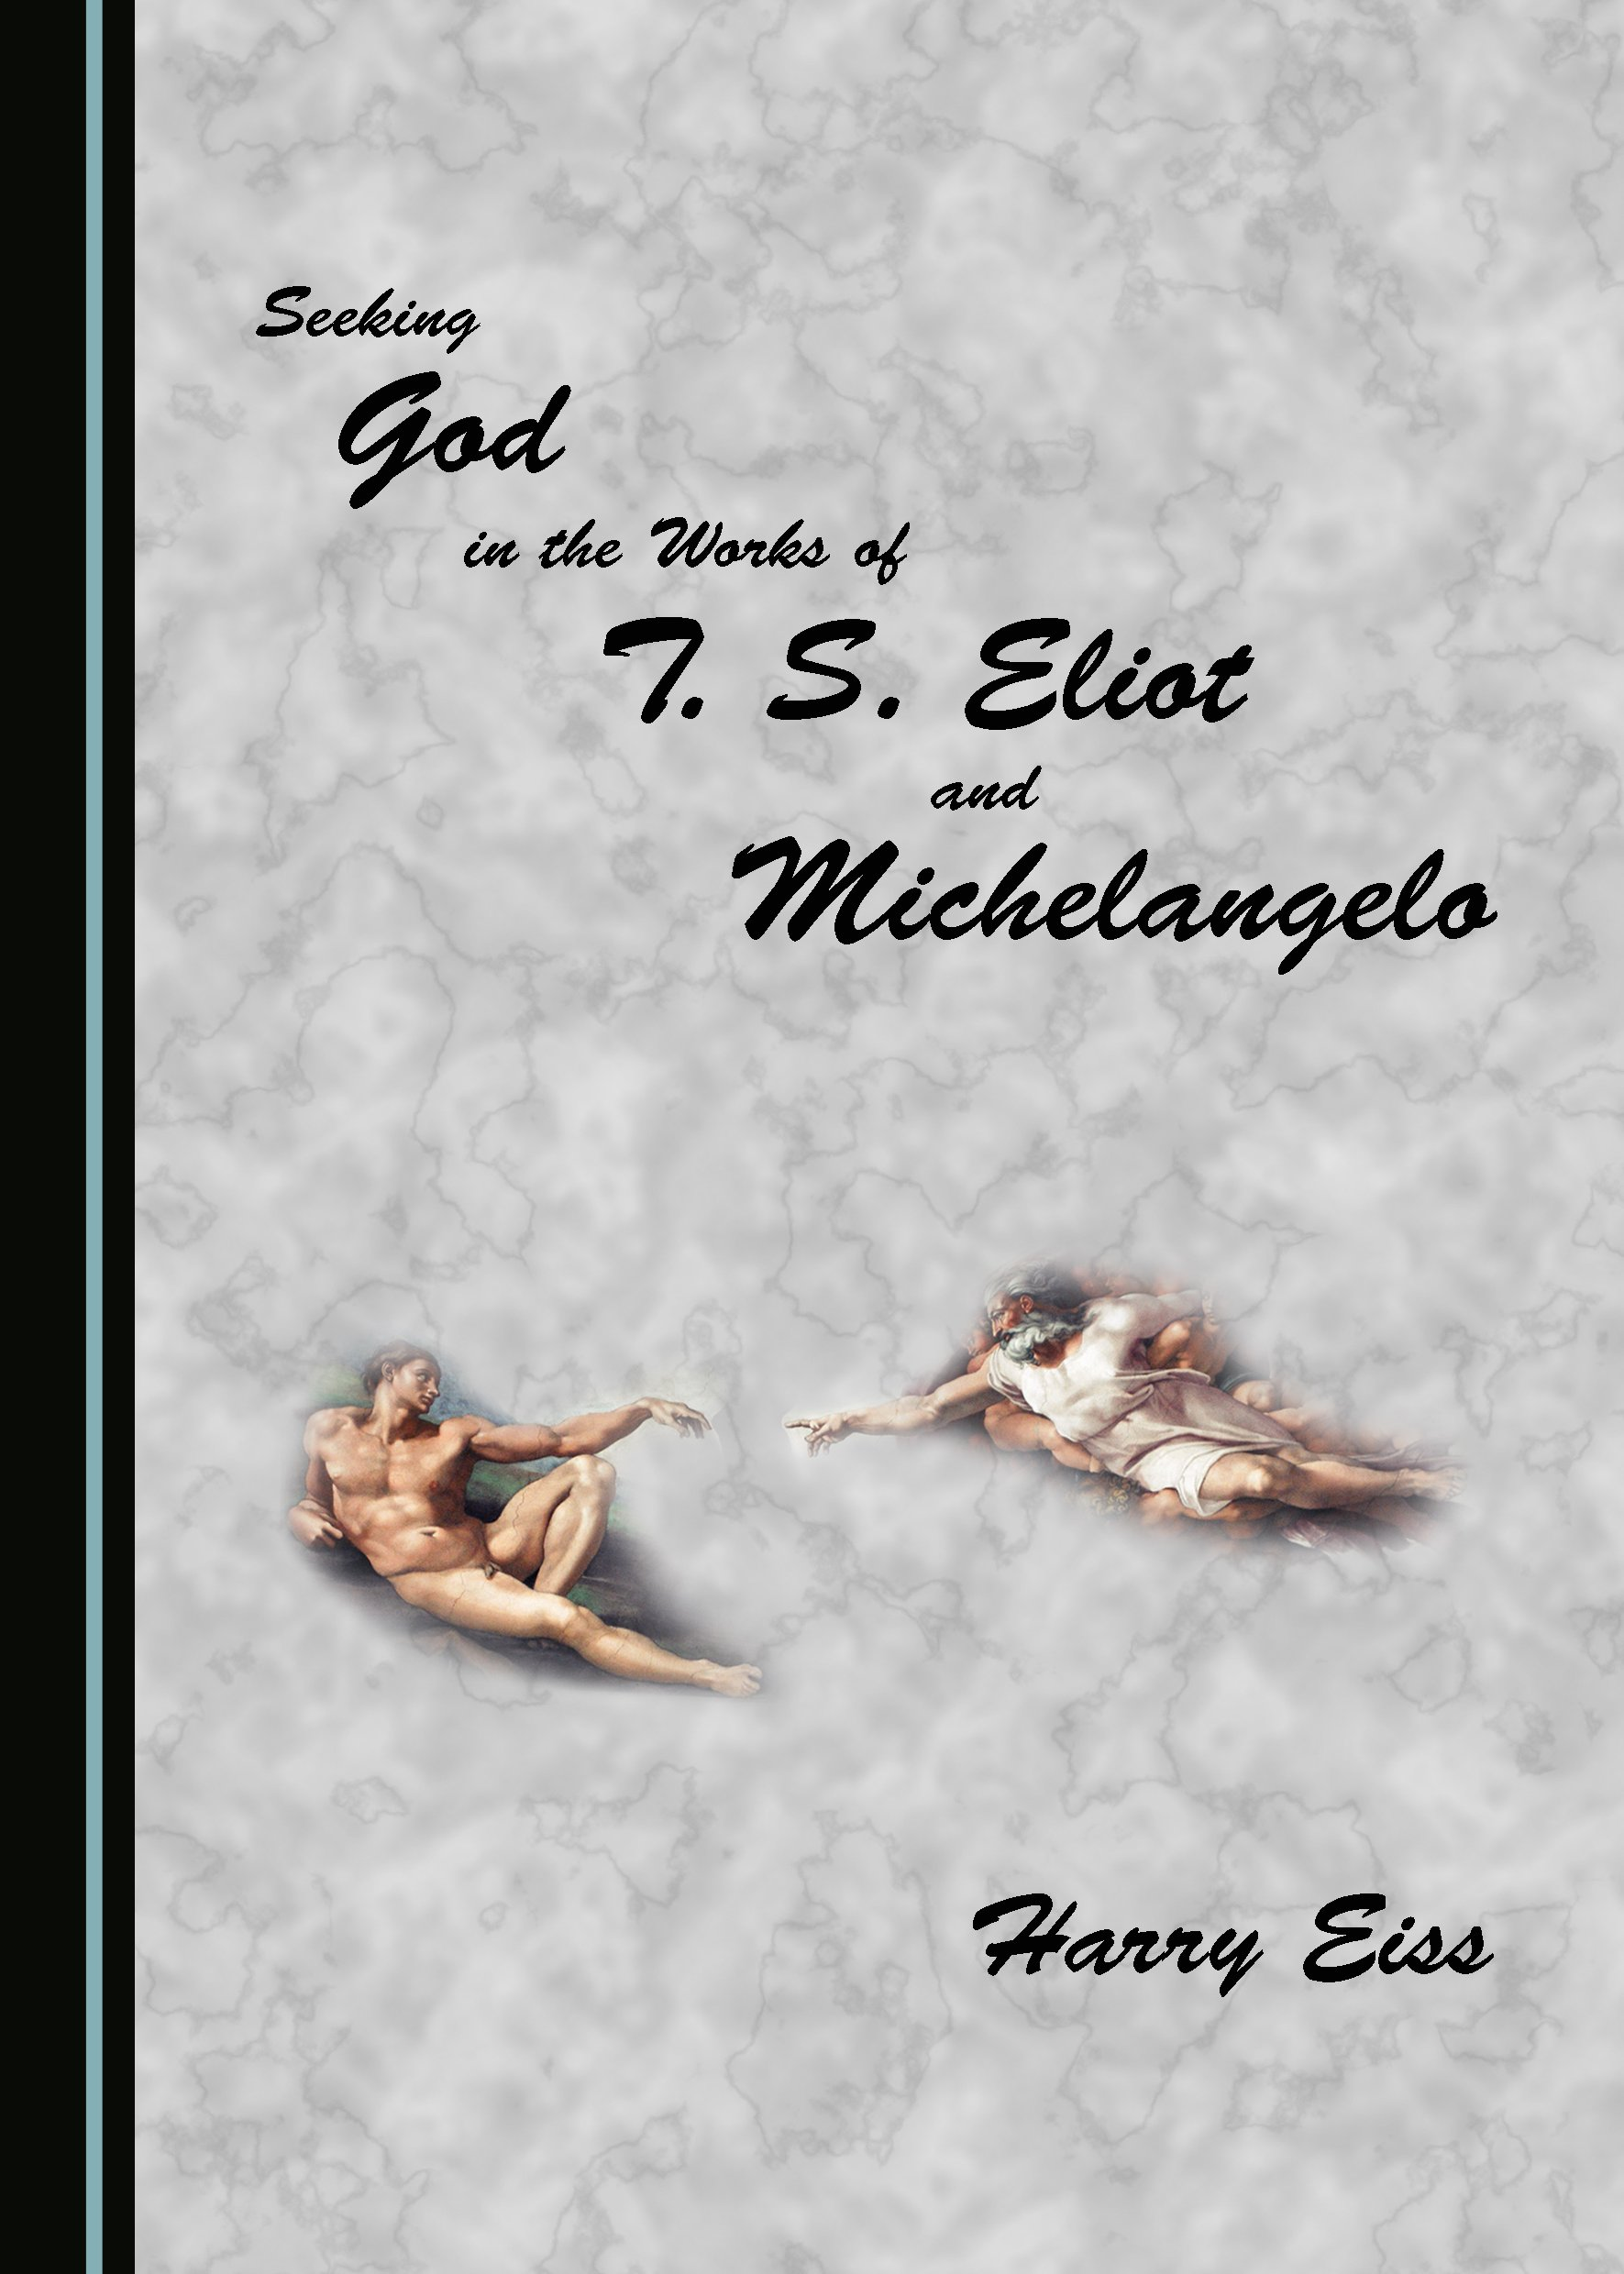 Seeking God in the Works of T. S. Eliot and Michelangelo